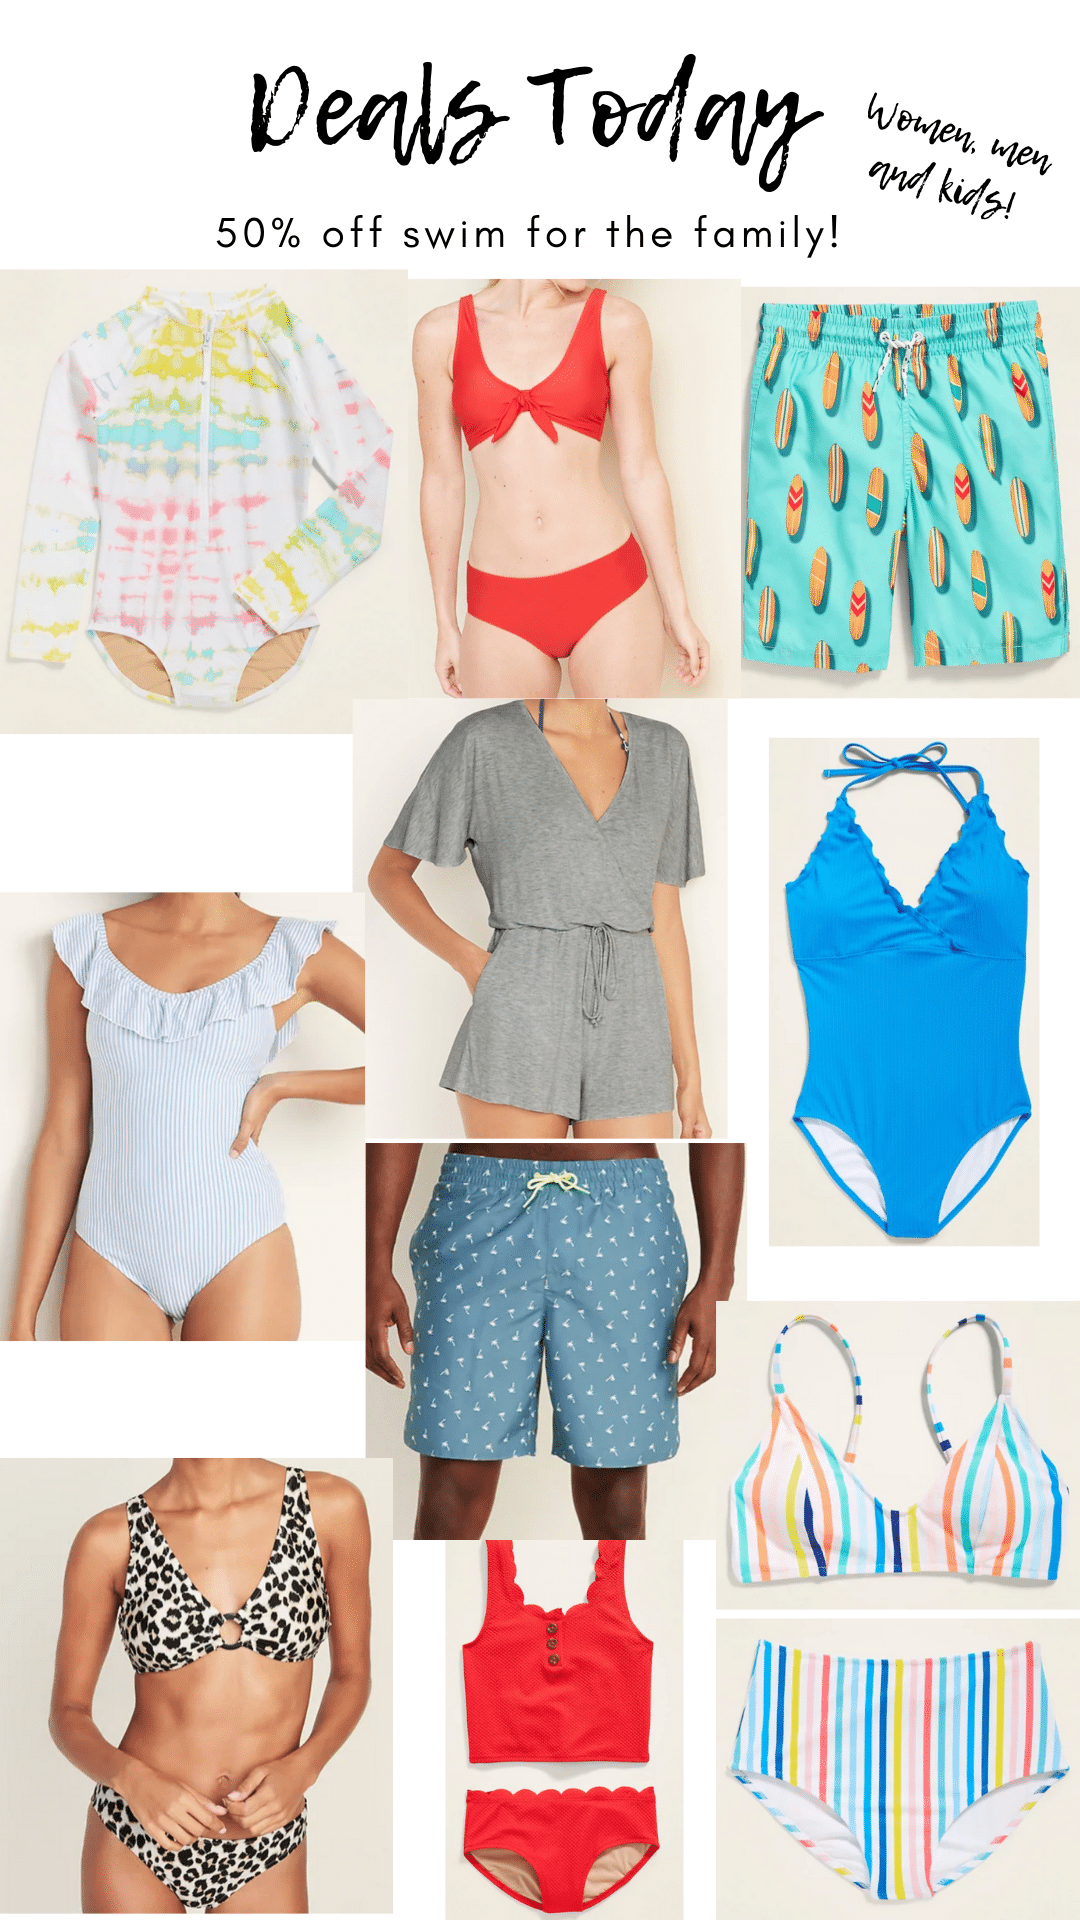 Swim Deals for the family, Stilettos and Diapers